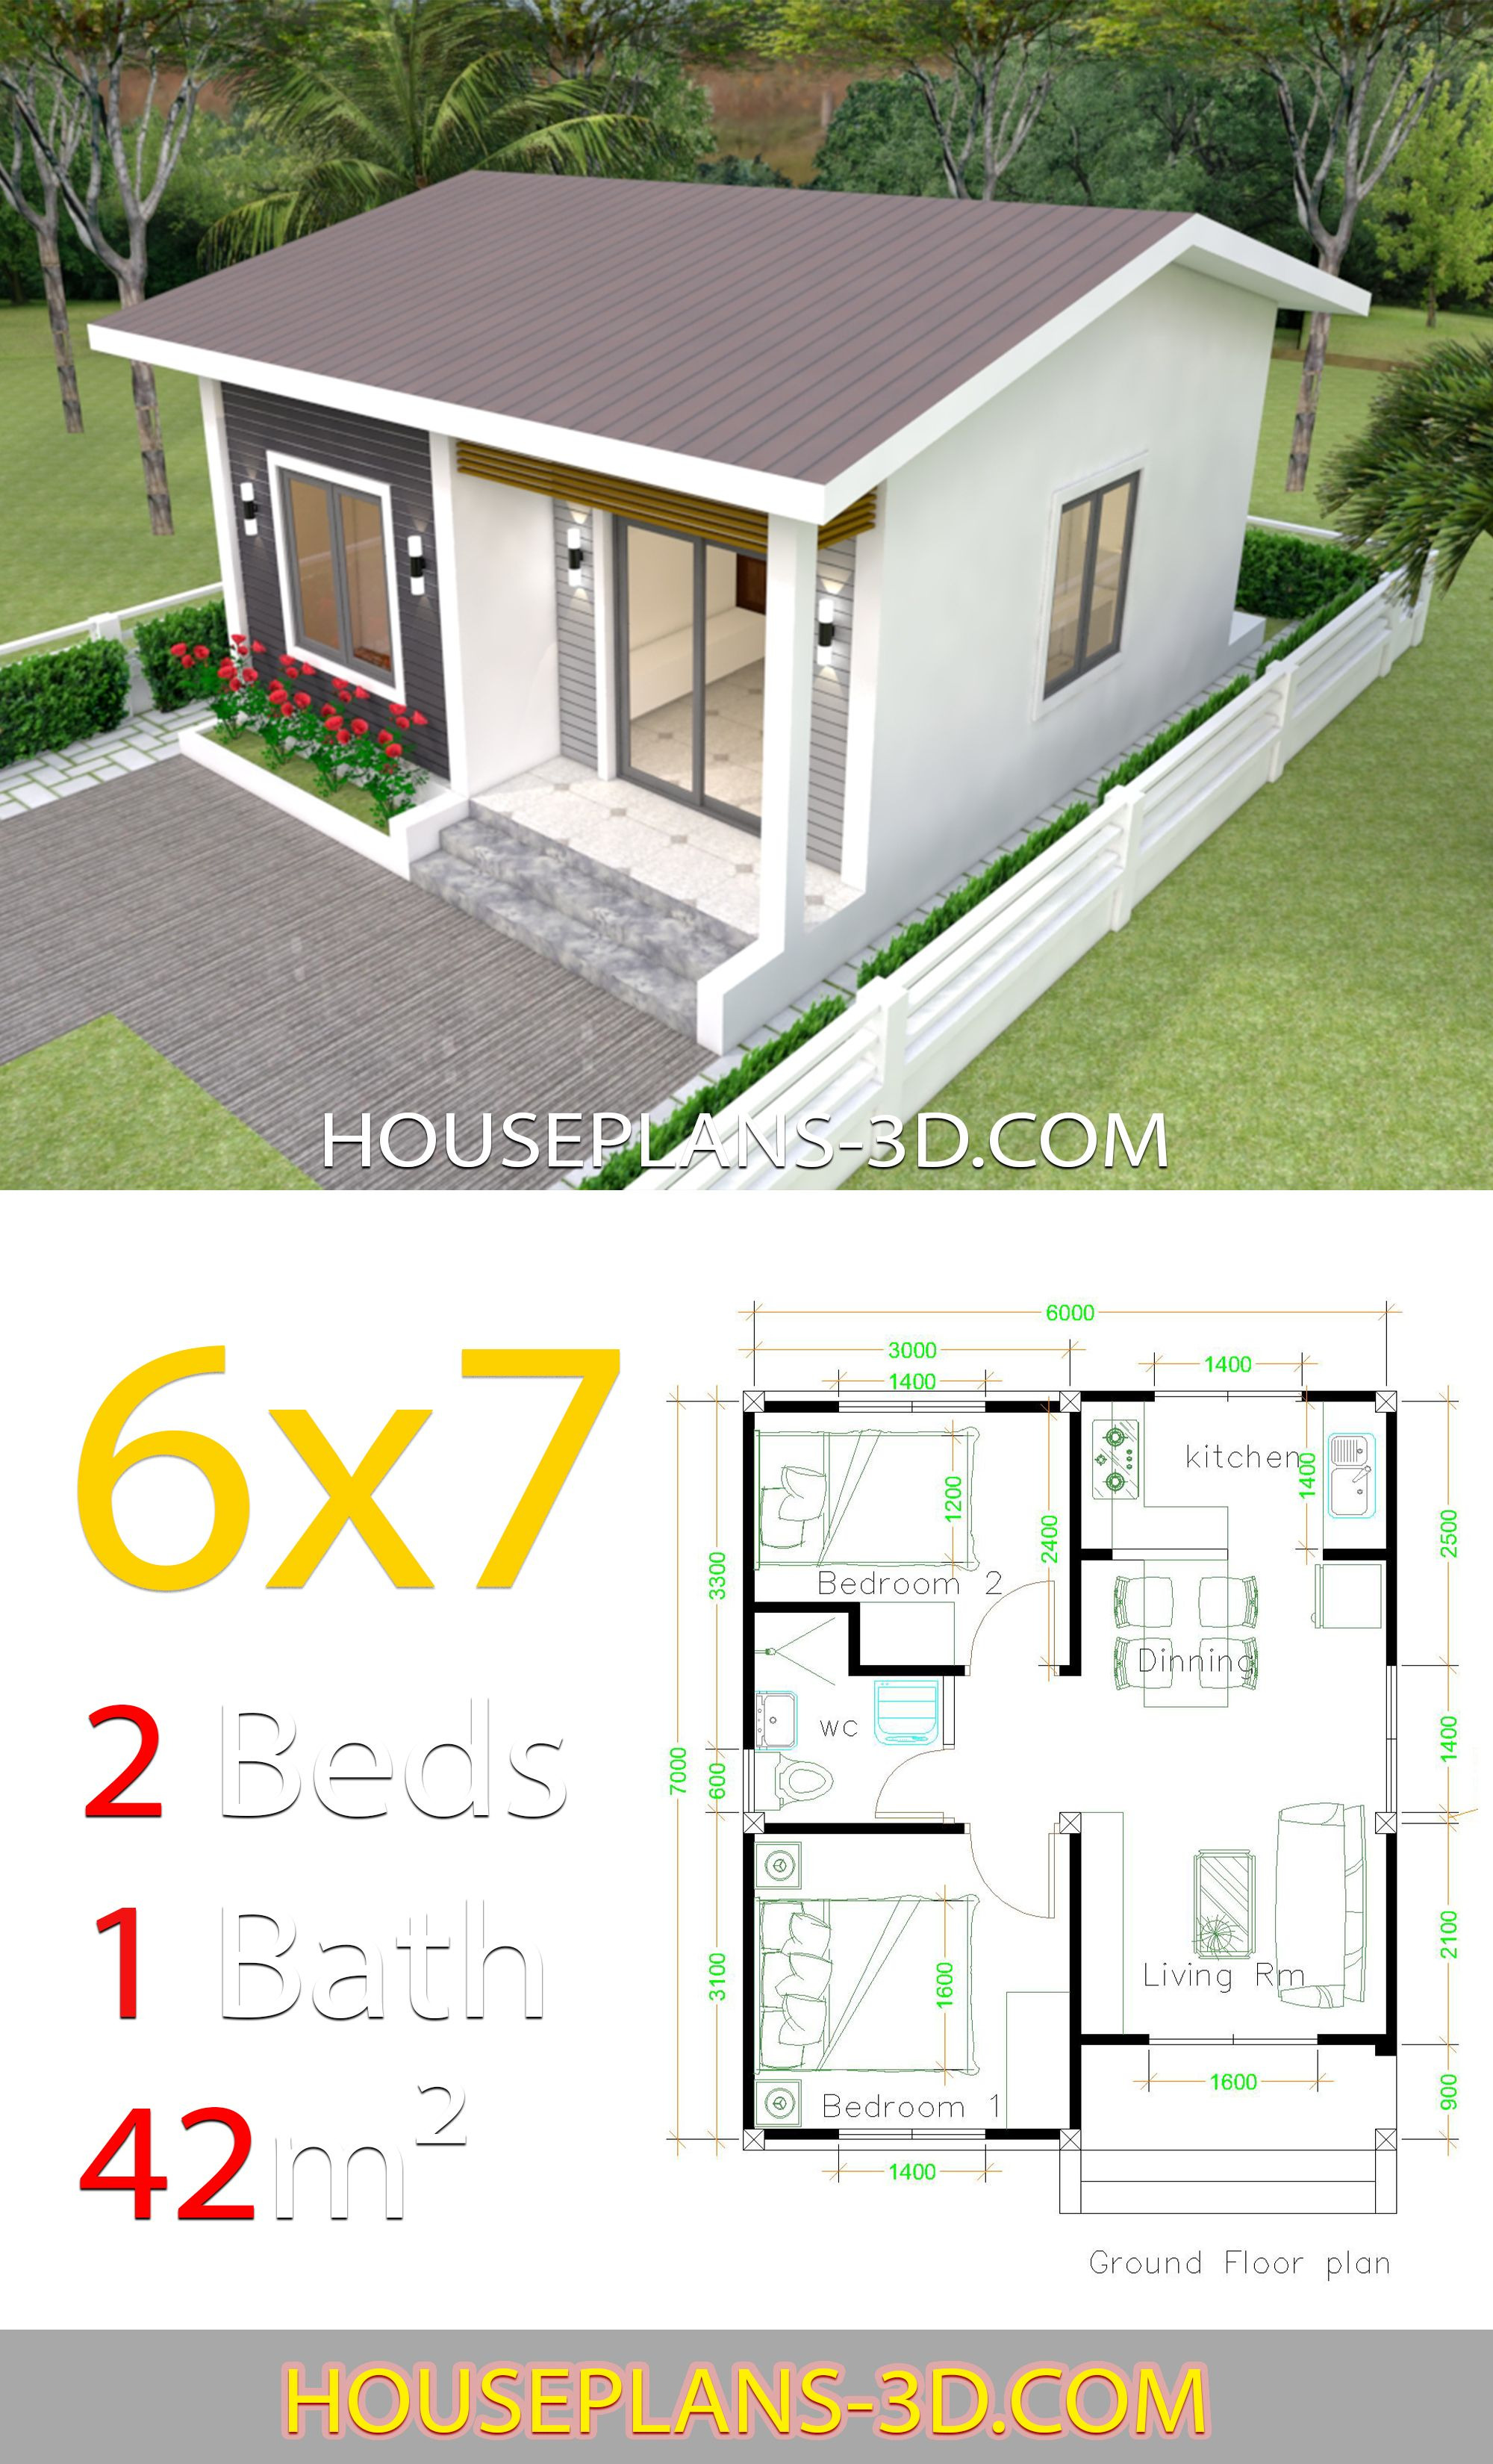 House Plans for Small House Inspirational House Design 6x7 with 2 Bedrooms